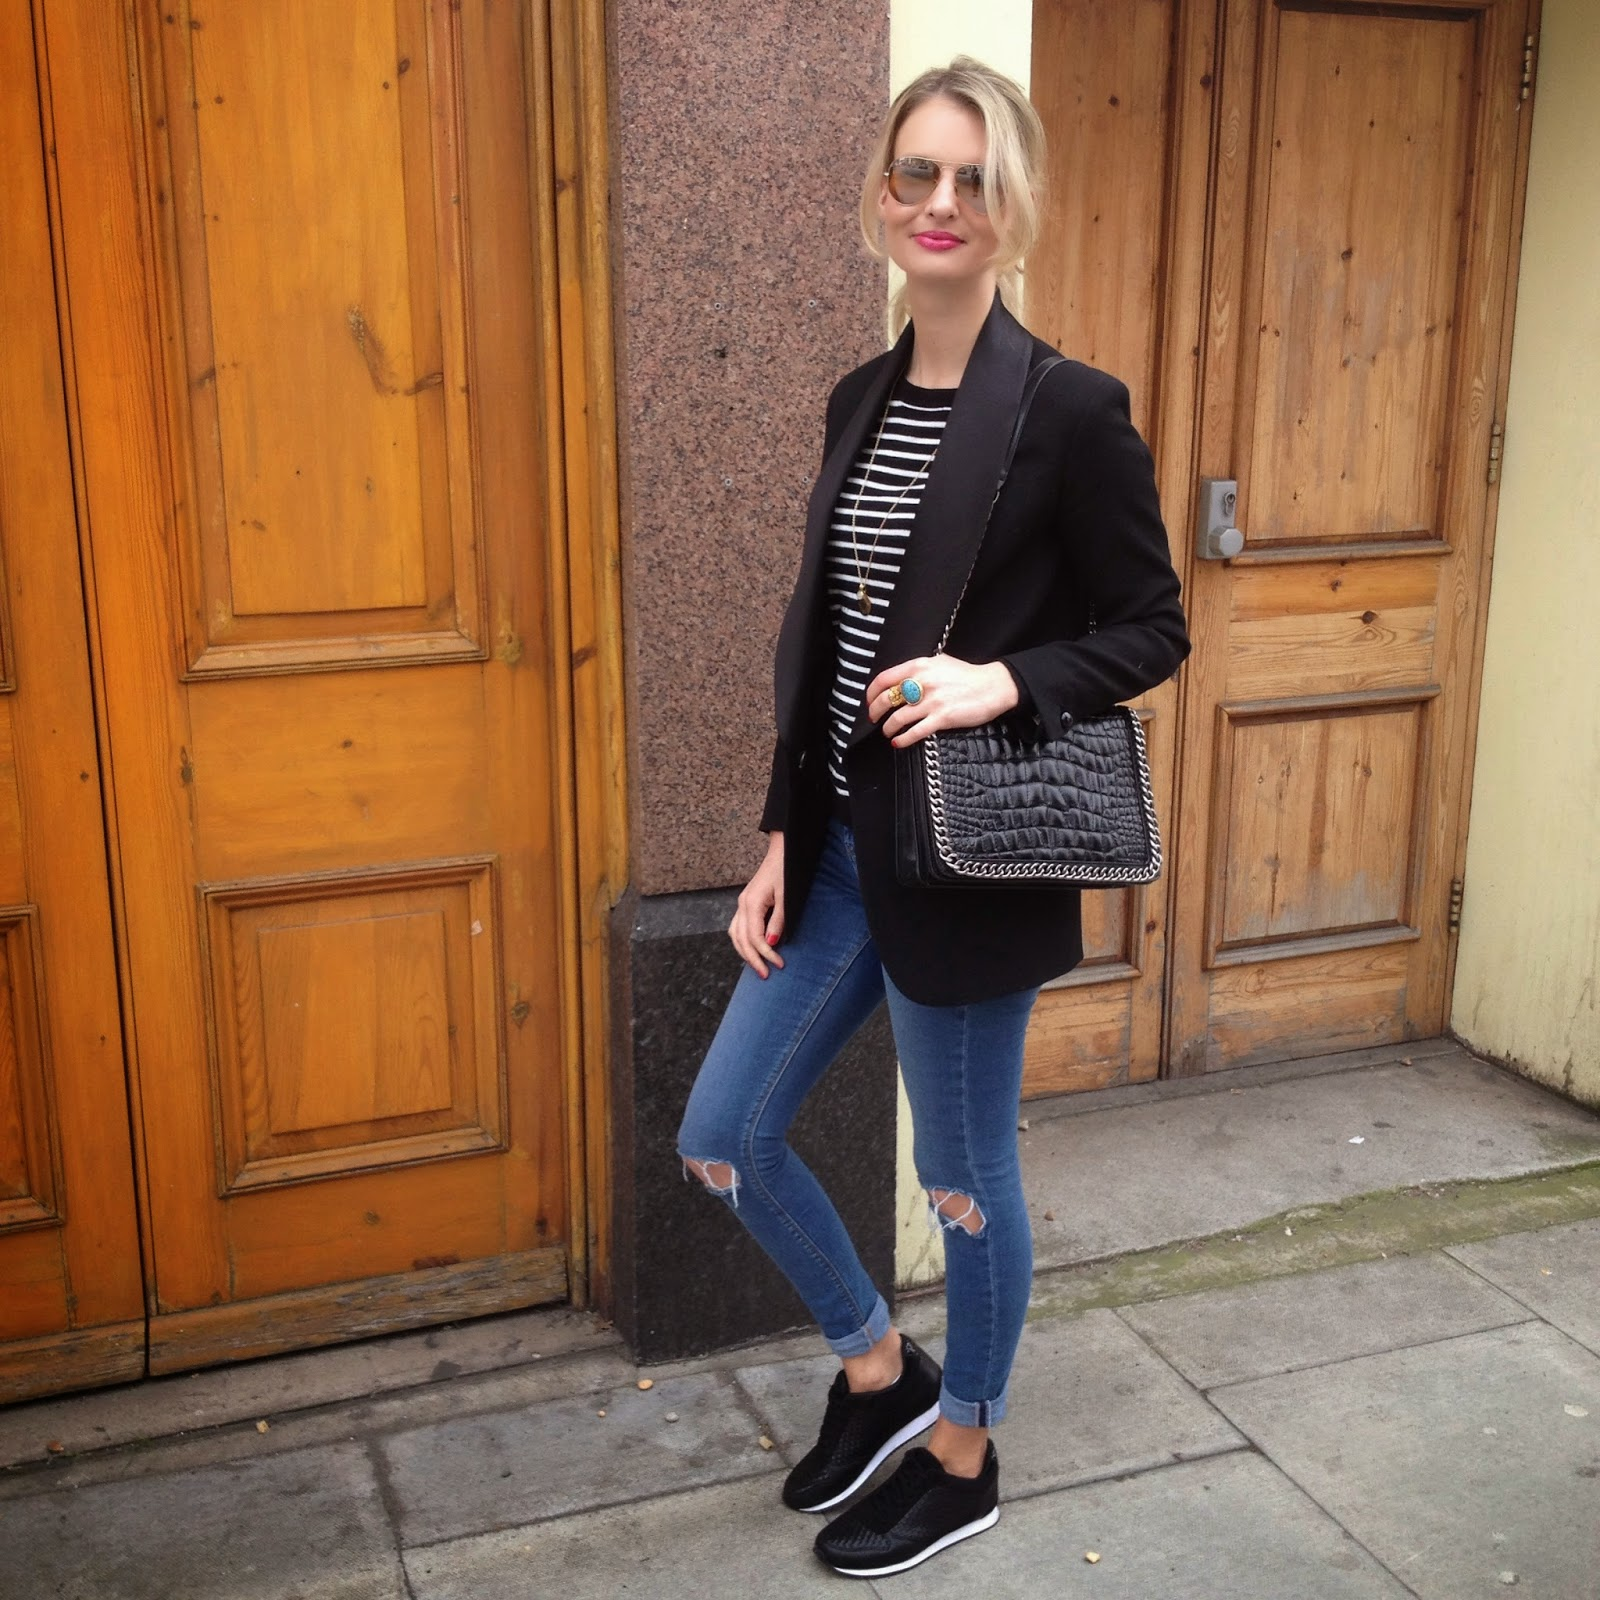 wardrobe staples, street style, fashion blogger, street style blogger